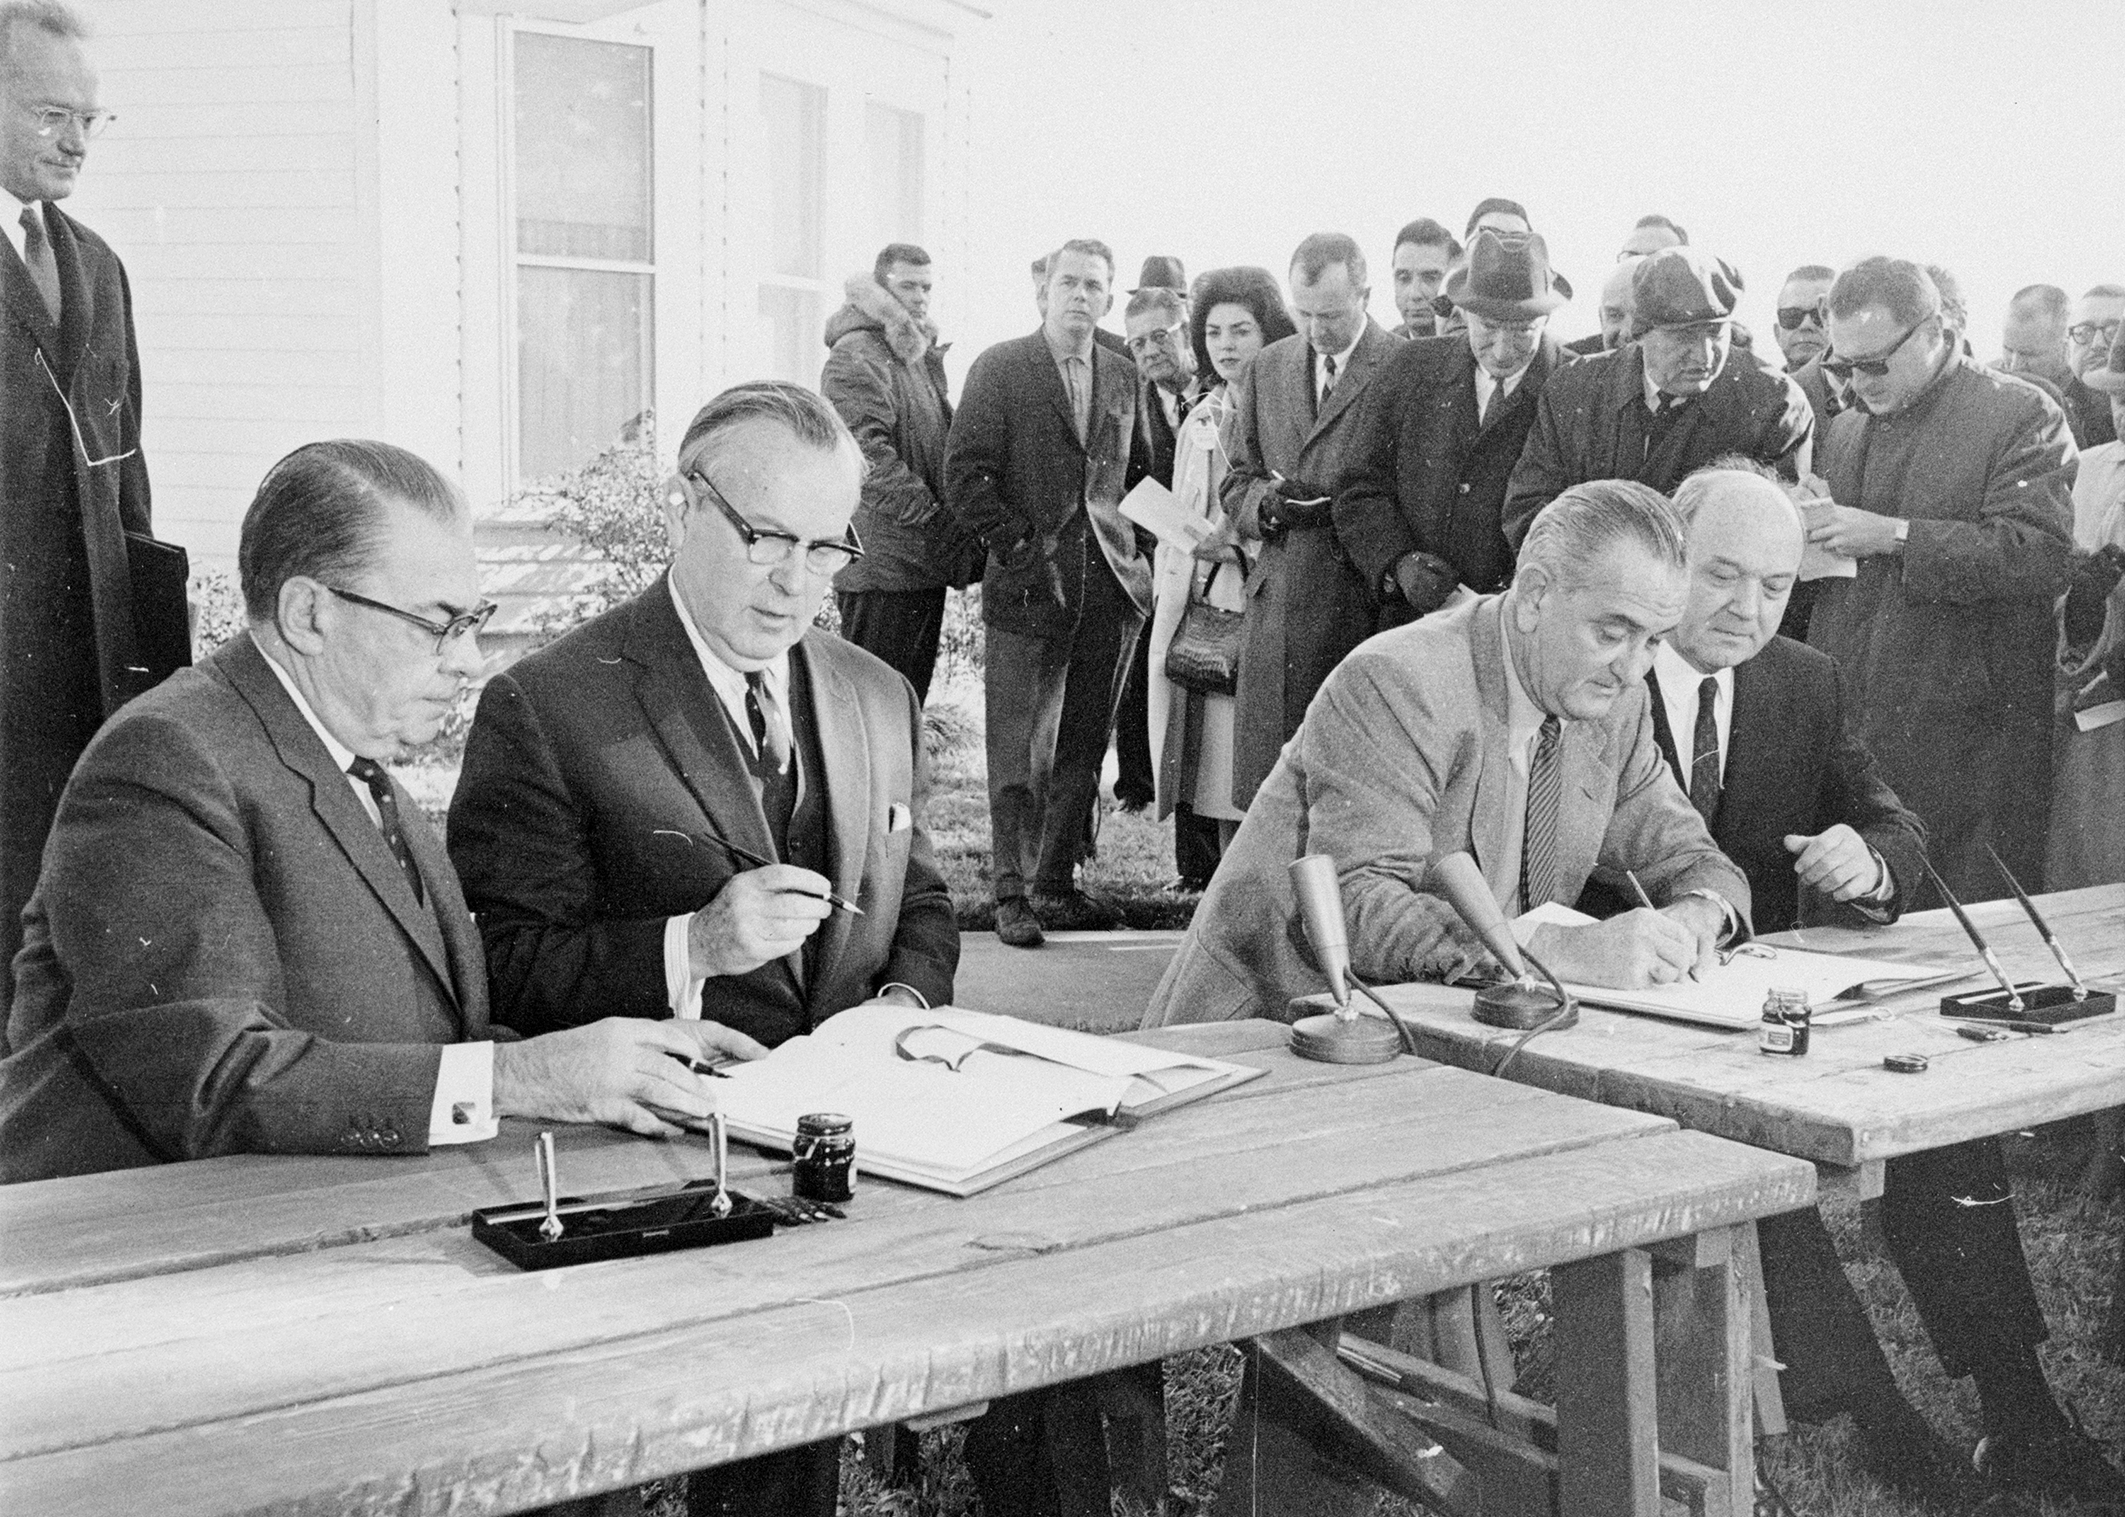 Signing of the Canada-U.S. Auto Pact at Lyndon B. Johnson's ranch, Johnson City, Texas, on January 15, 1965. Library and Archives Canada, PA-139787.